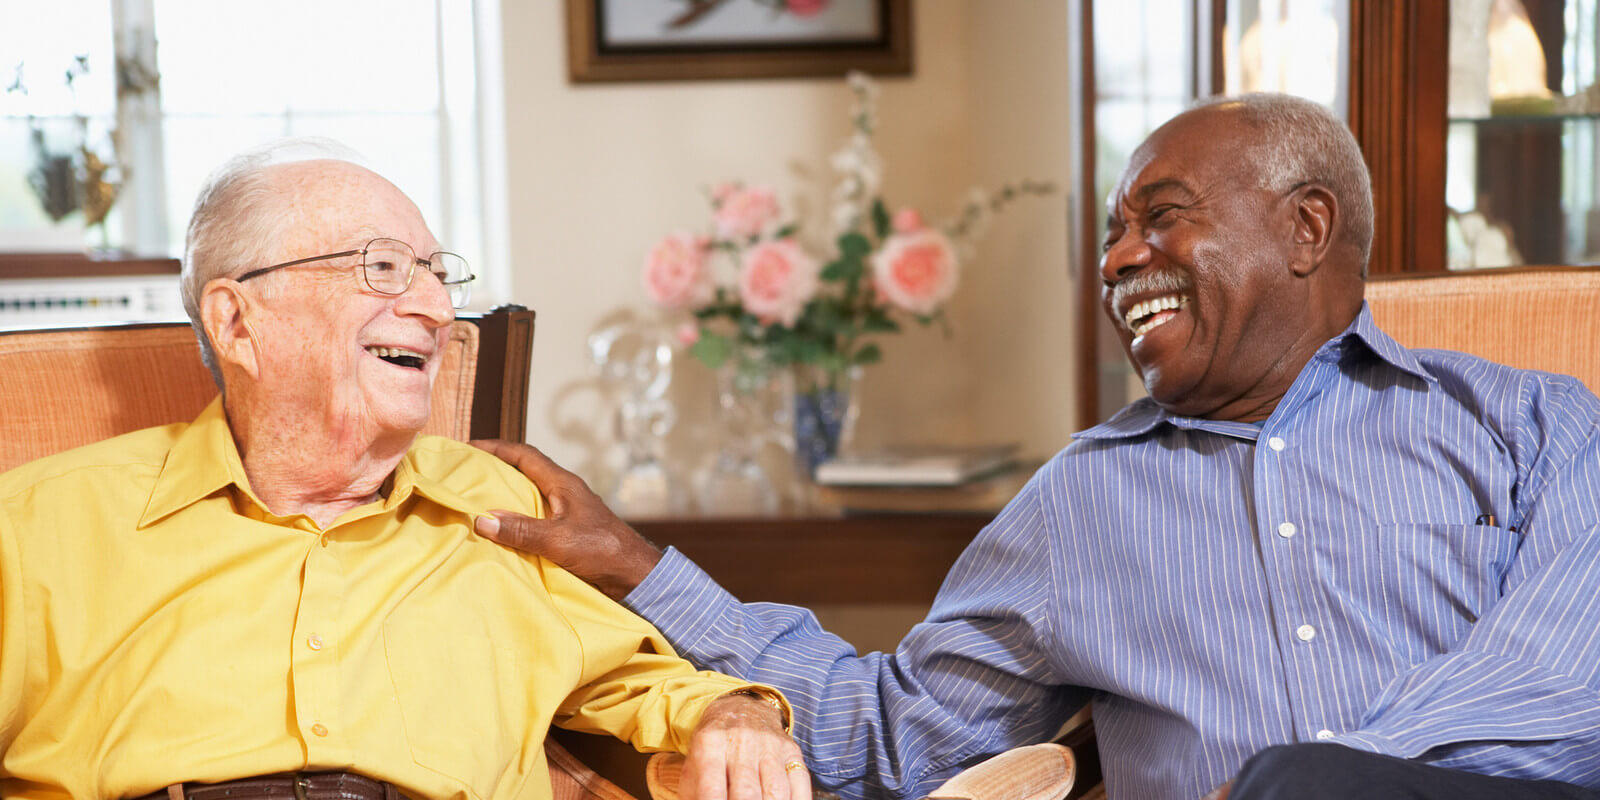 Independent living in NY for senior men and widows